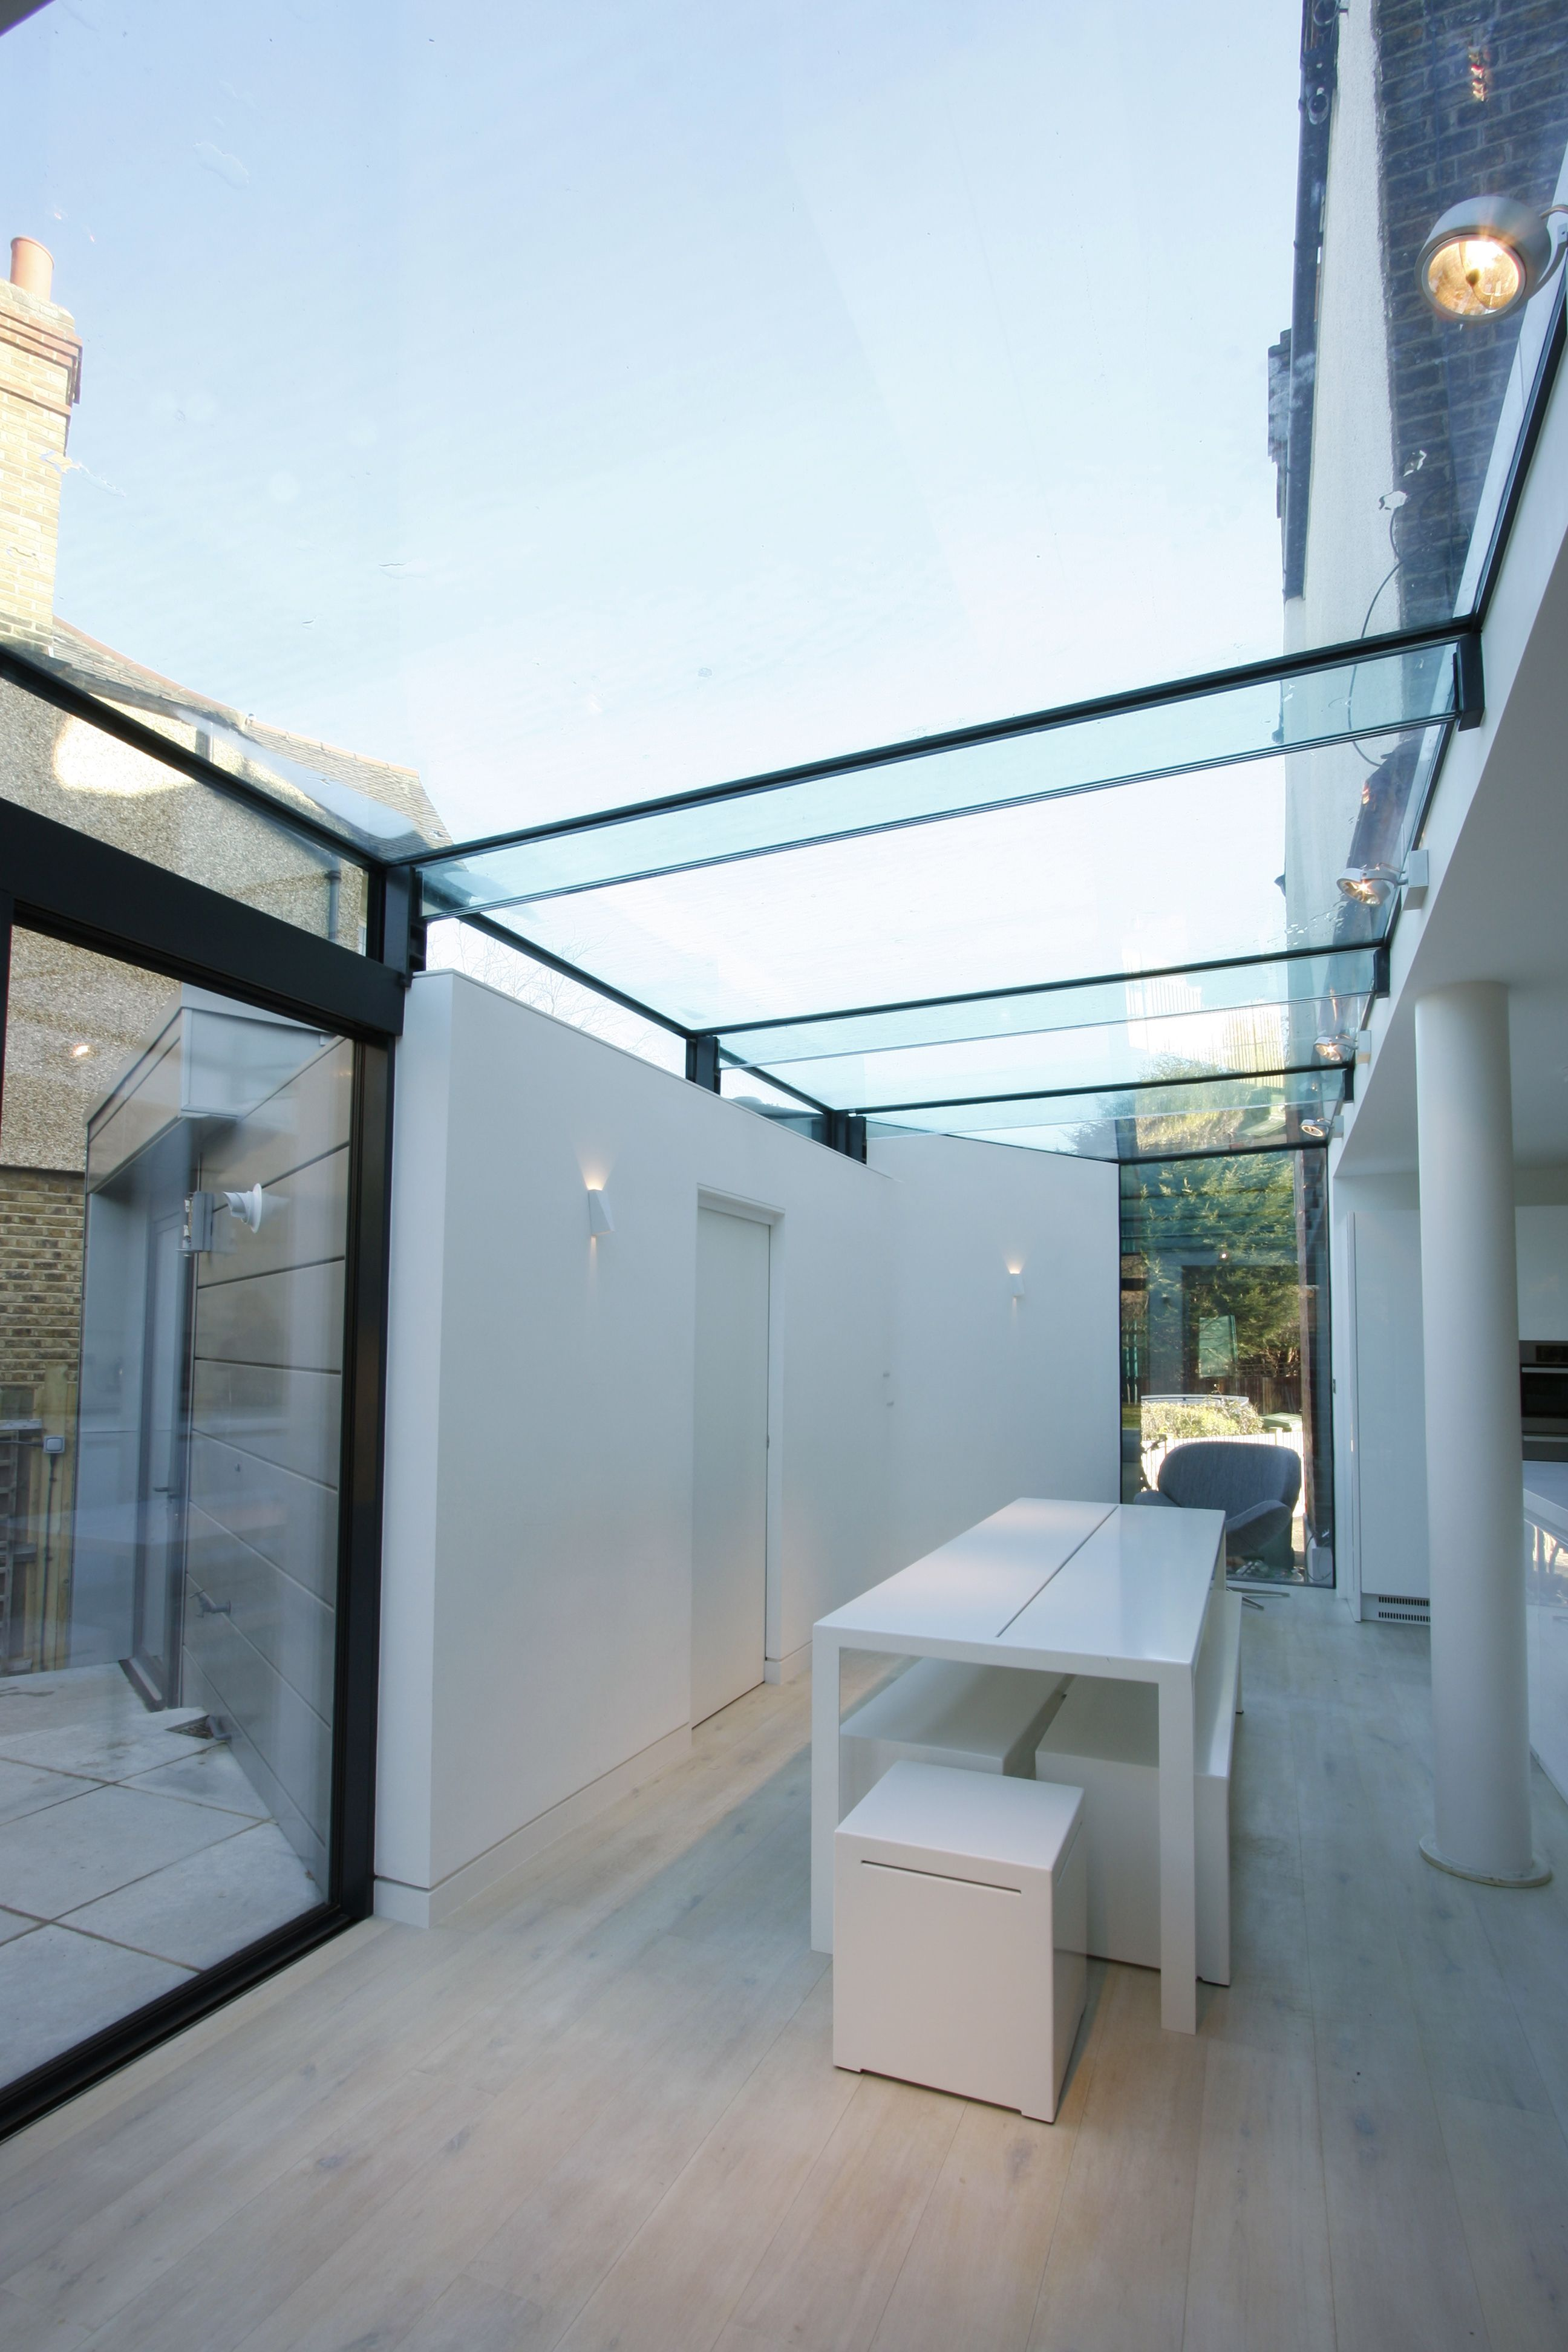 Structural Frameless Glass Roof On Residential Extension By Iq Glass Shed Roof Design Rooftop Design Glass Roof